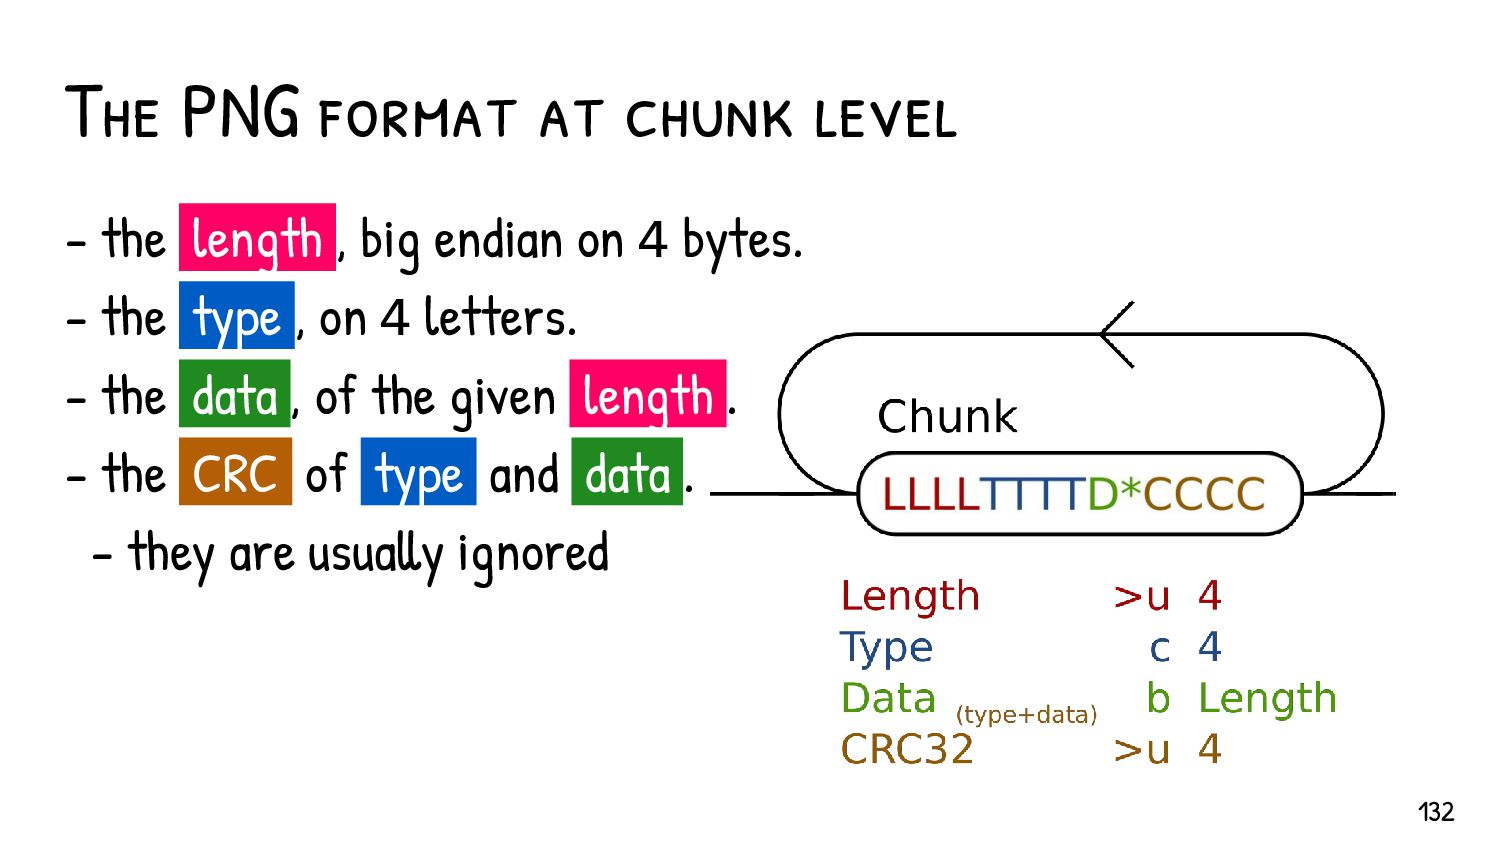 Lower case-typed chunks are ignored first letter...